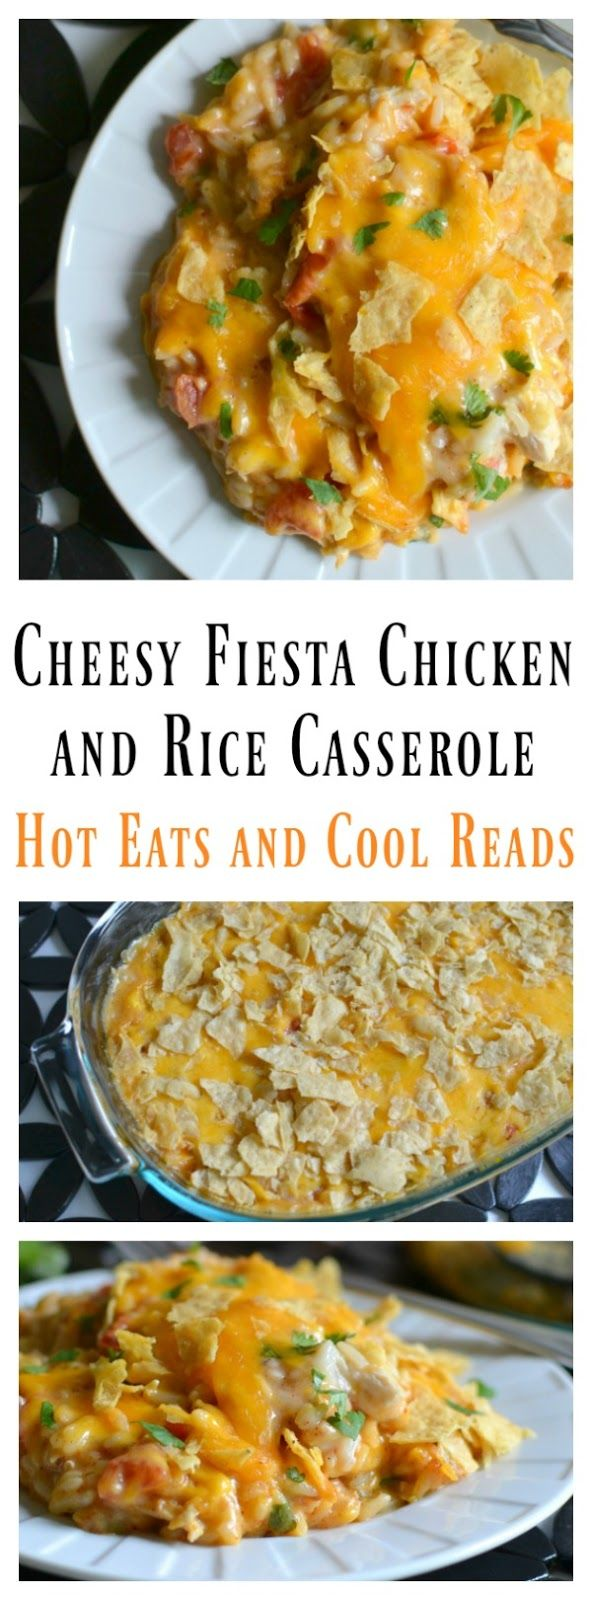 Create this deliciously simple recipe for dinner on a busy weeknight! It's easy enough for the kids to help out!